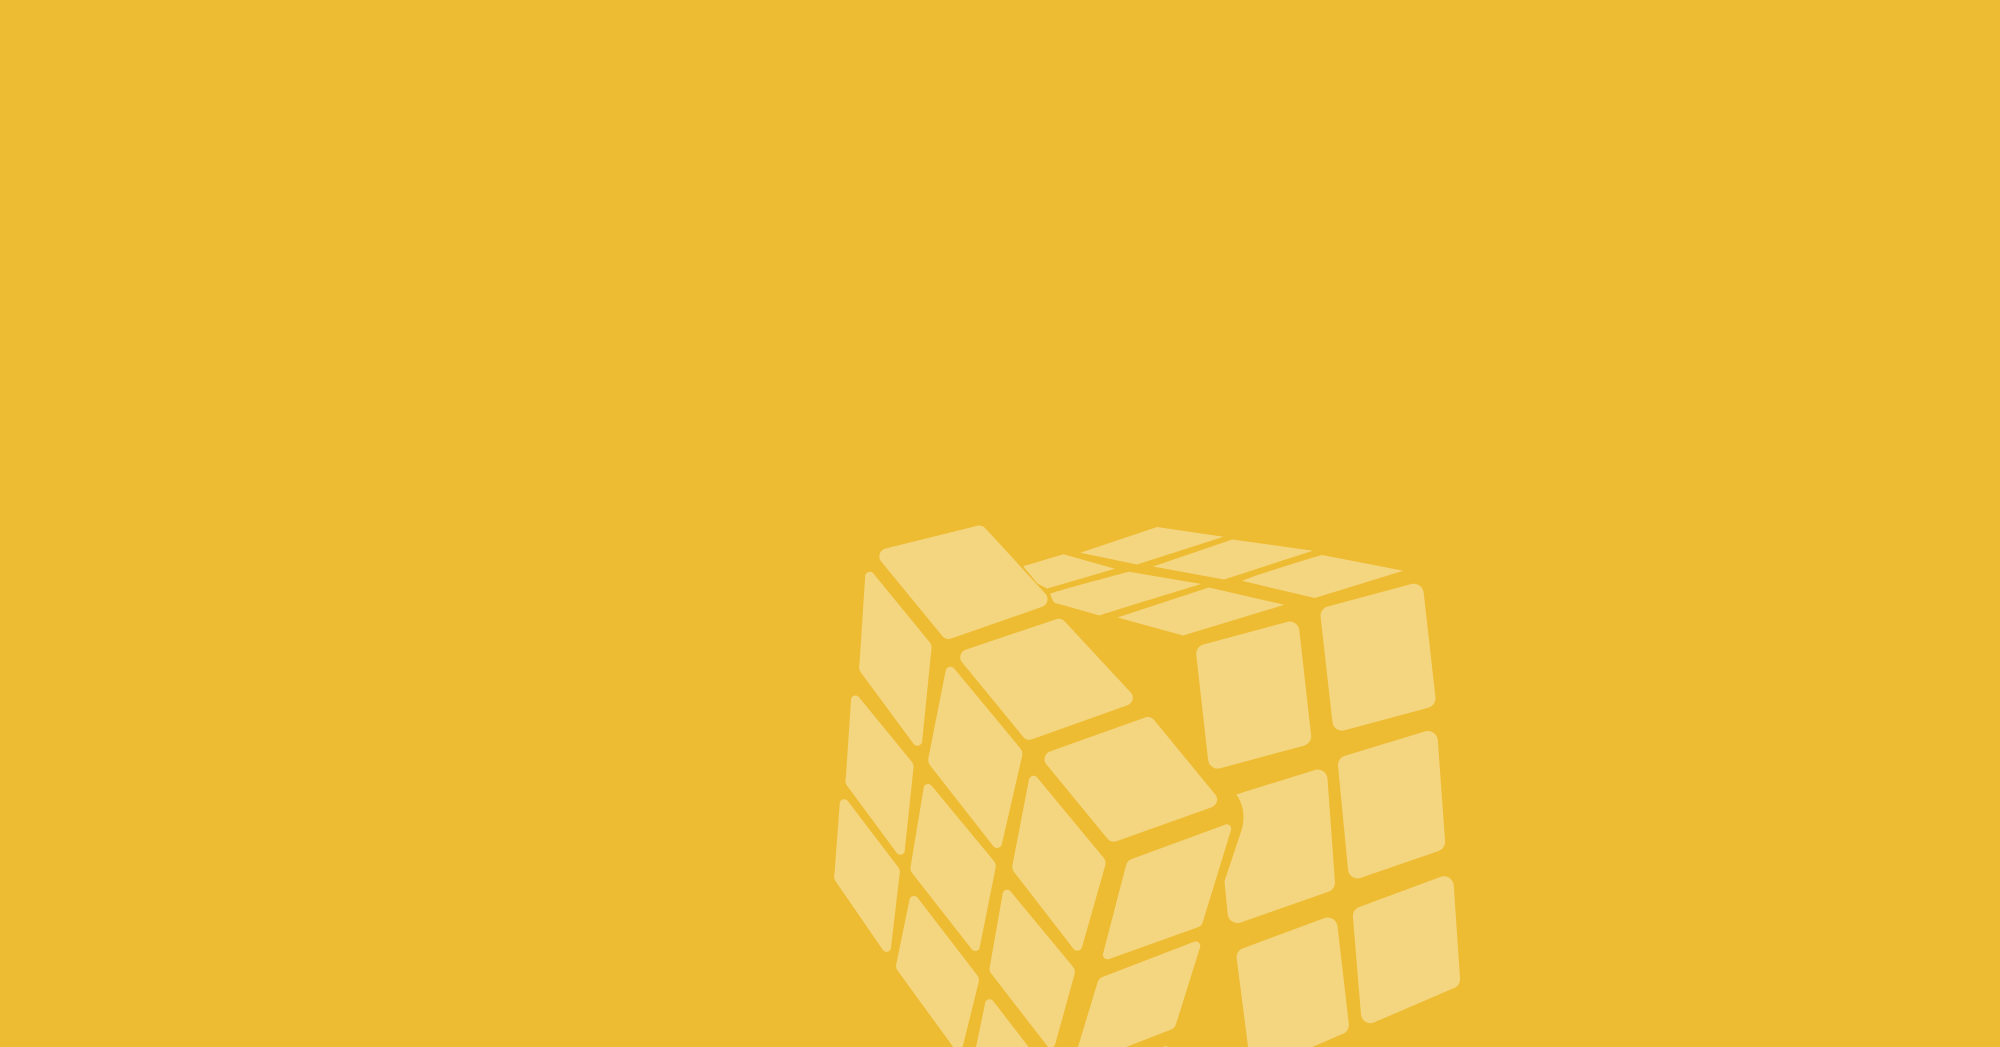 Pale yellow Rubik's cube with one layer turning over yellow background.